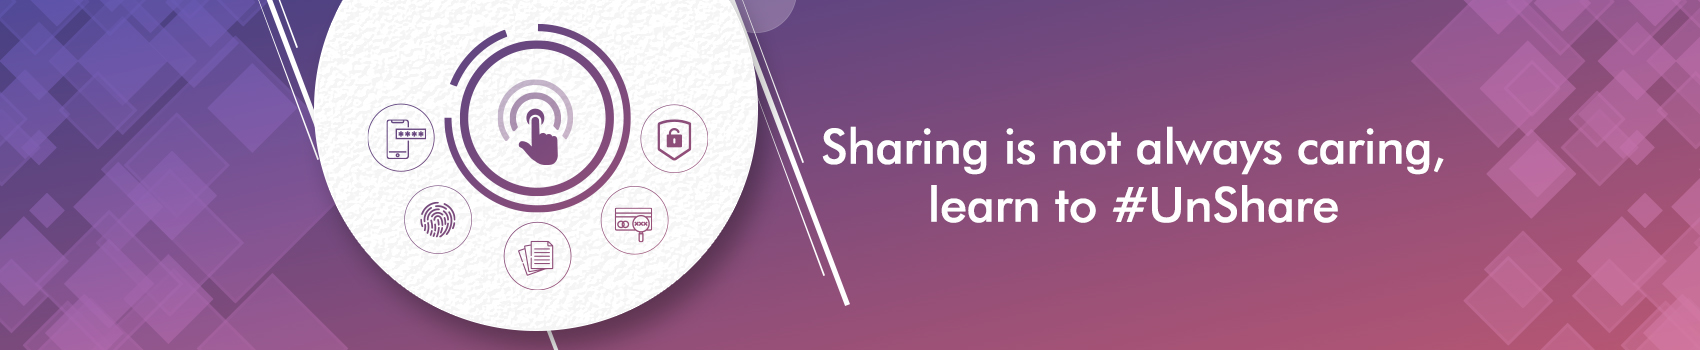 Sharing is not always caring, learn to #UnShare